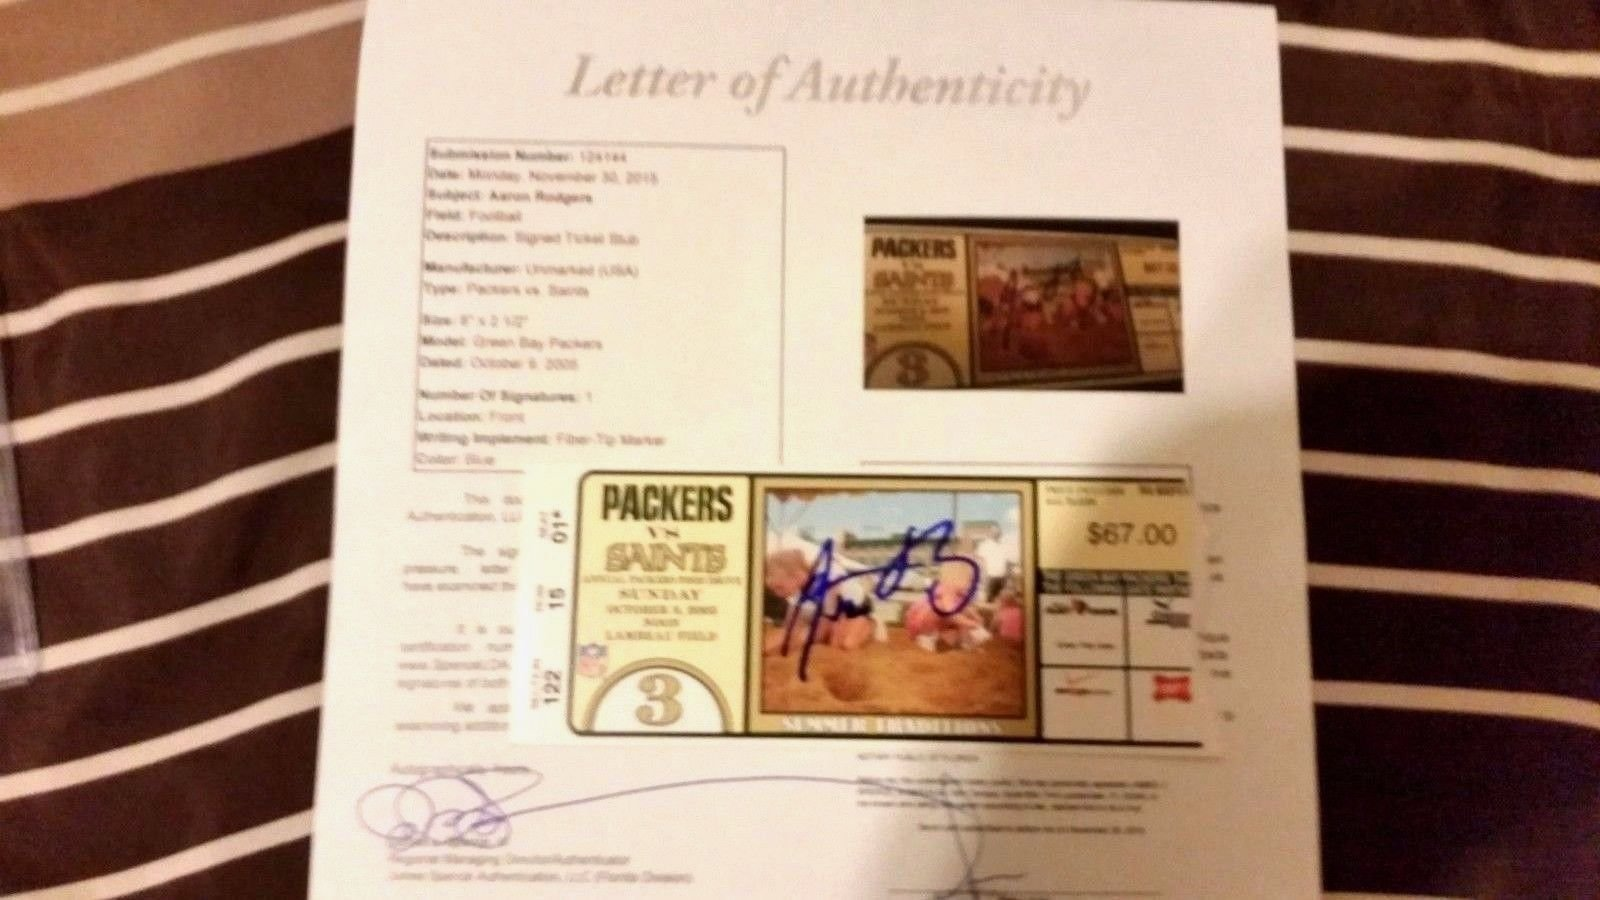 Aaron Rodgers Autographed Signed NFL Debut Game 1st Game Season Ticket Stub 10/9/05 Memorabilia JSA Authentic